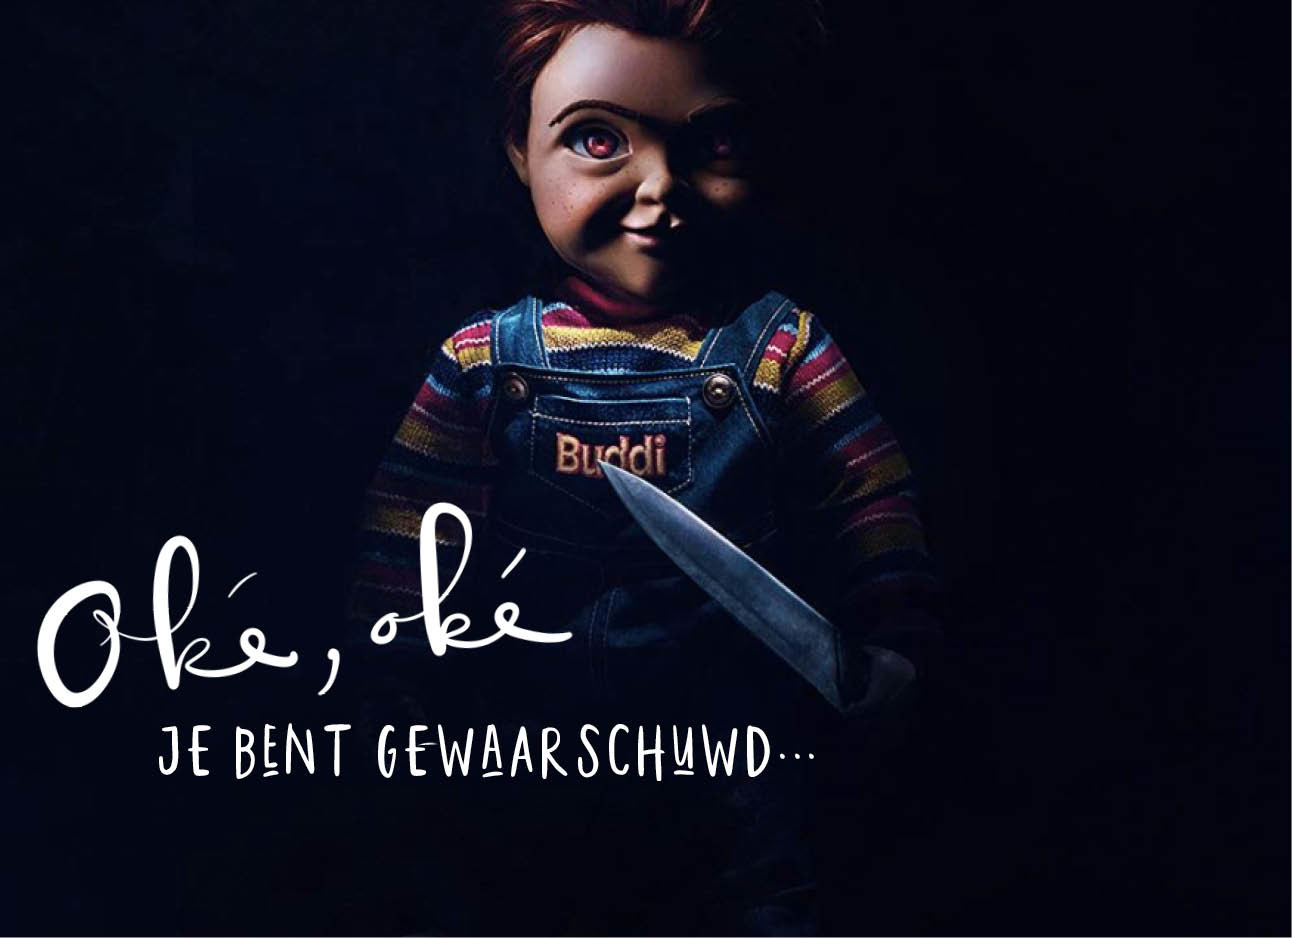 nieuwe trailer van de film child'splay met horrorpop chucky